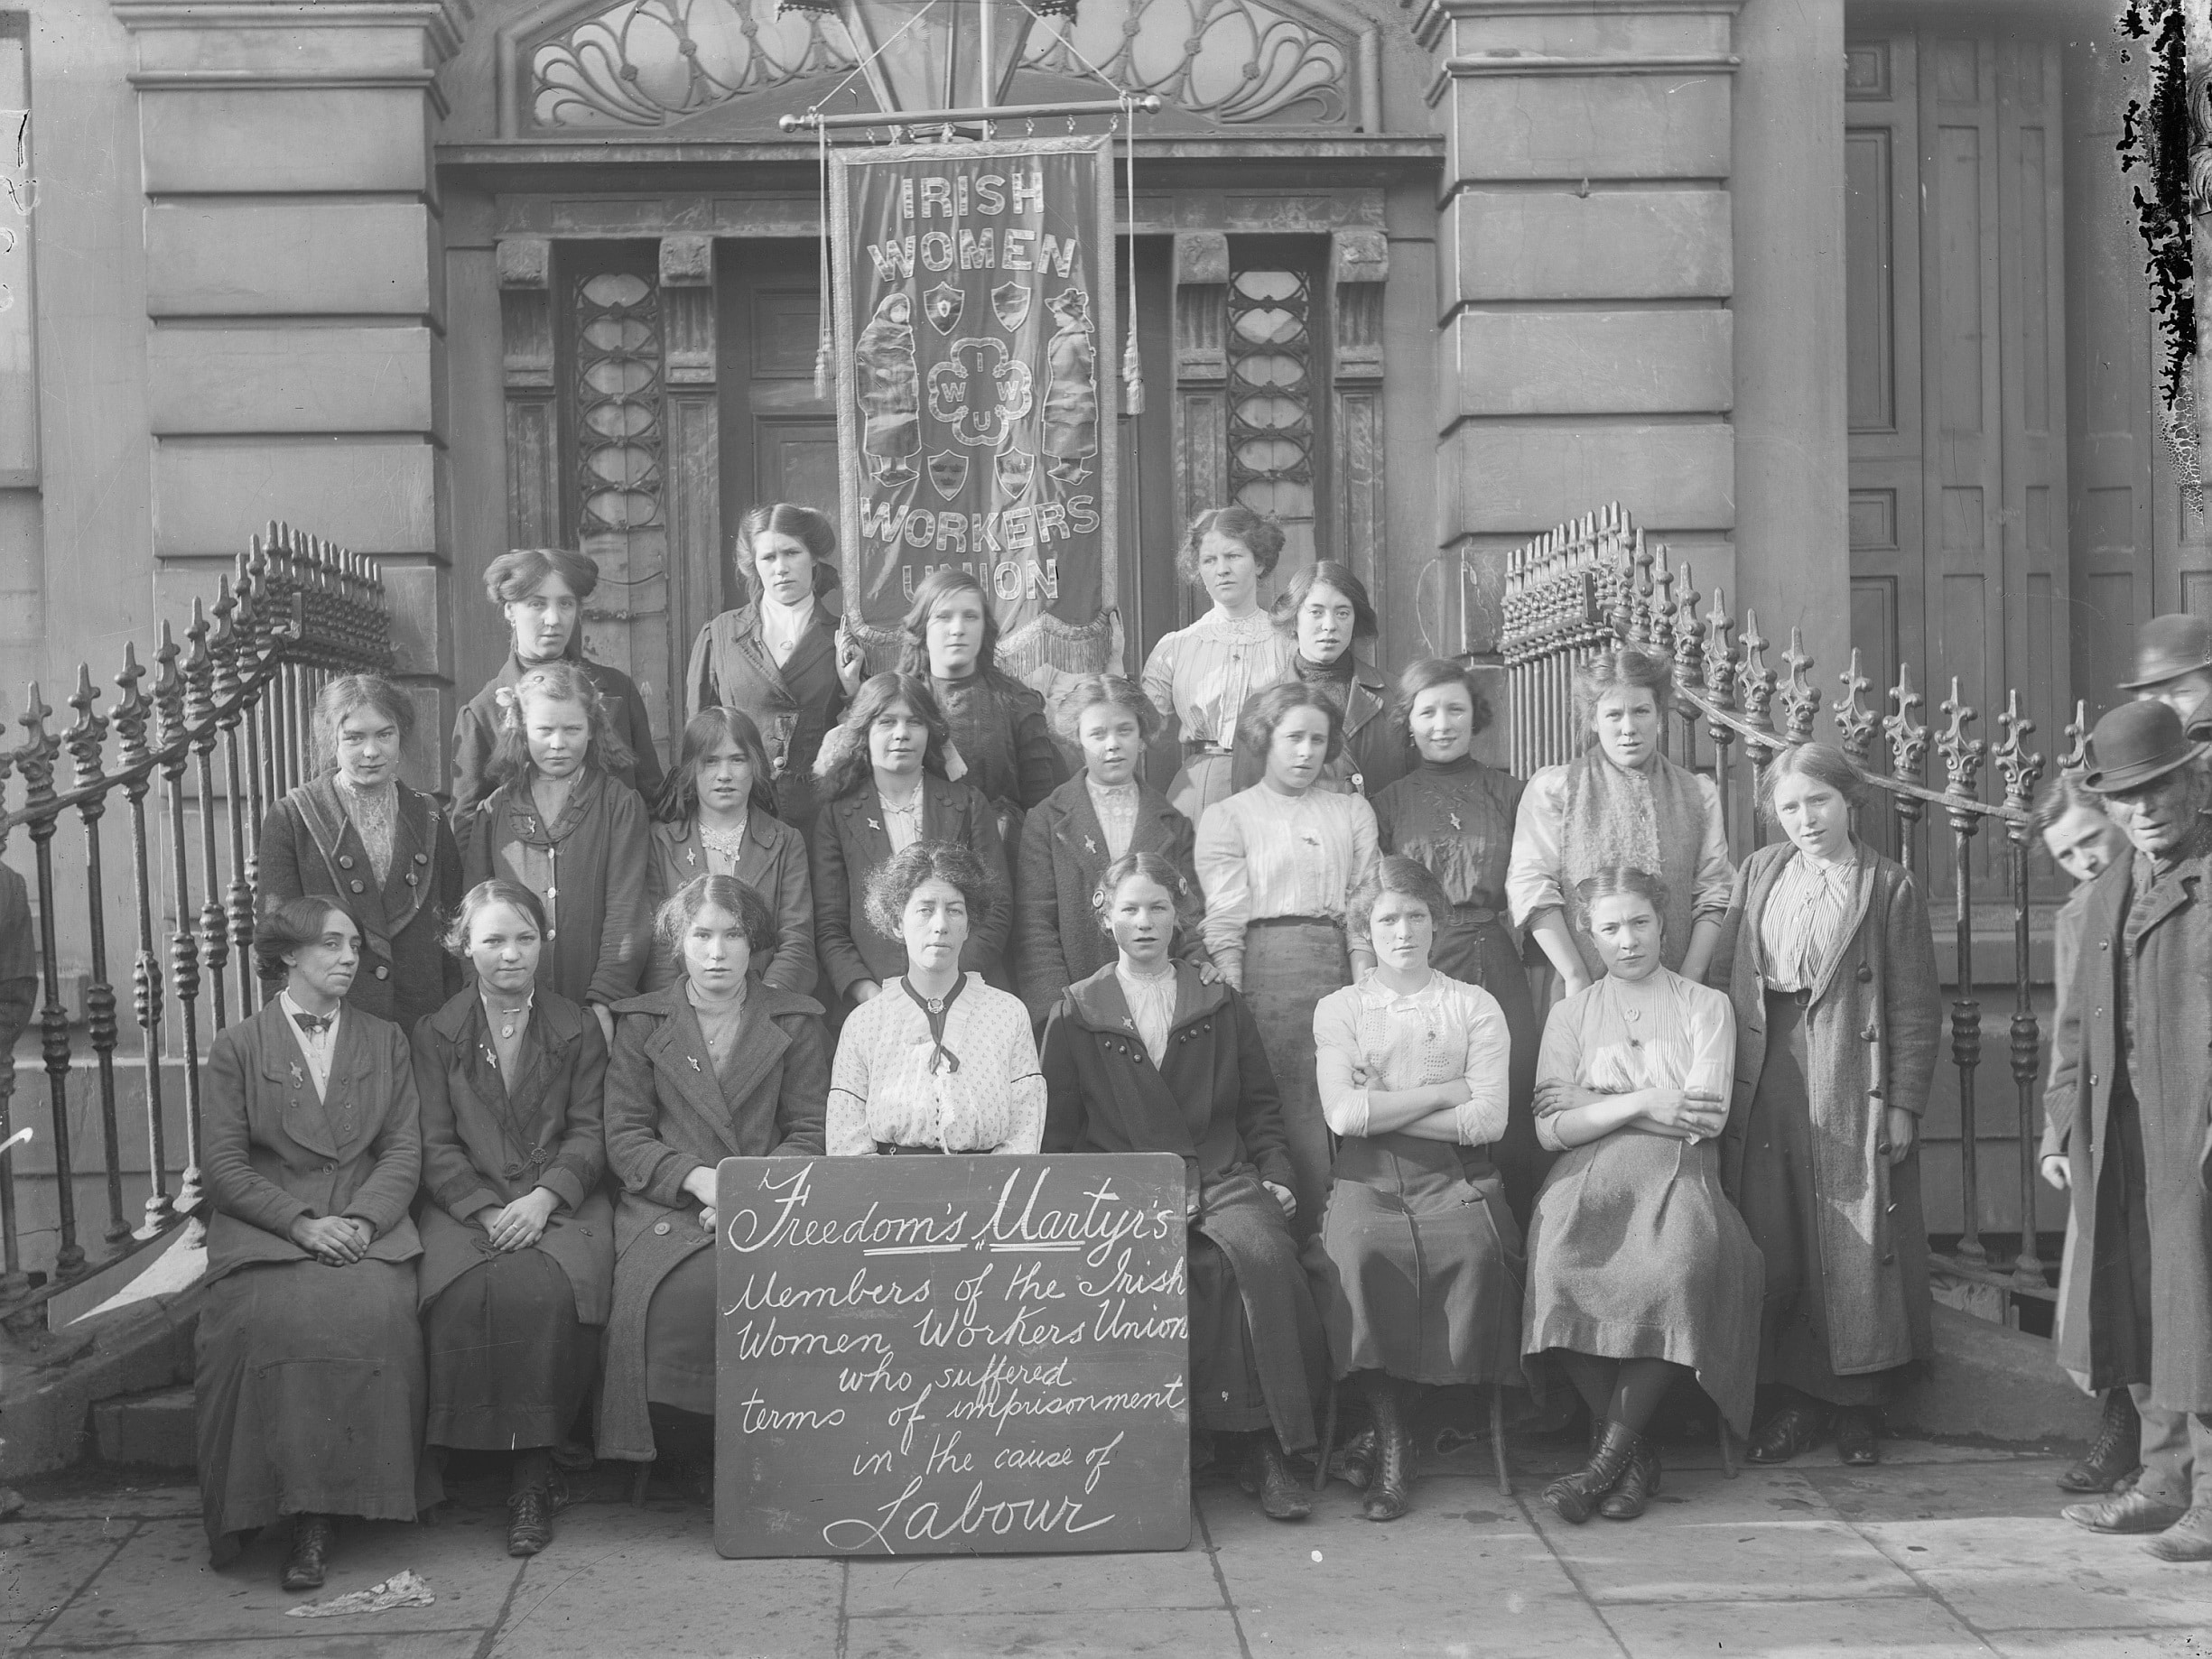 Members of the Irish Women's Workers' Union on the steps of Liberty Hall, c. 1914. The Union was founded in 1911.Text: IRISH WOMEN WORKERS UNION - Freedom's Martyr's : Members of the Irish Womens Workers Union Who suffered terms of imprisonment in the cause of Labour. Photo: Taken ca. 1914. Collection: National Library of Ireland on The Commons. No known copyright restrictions.